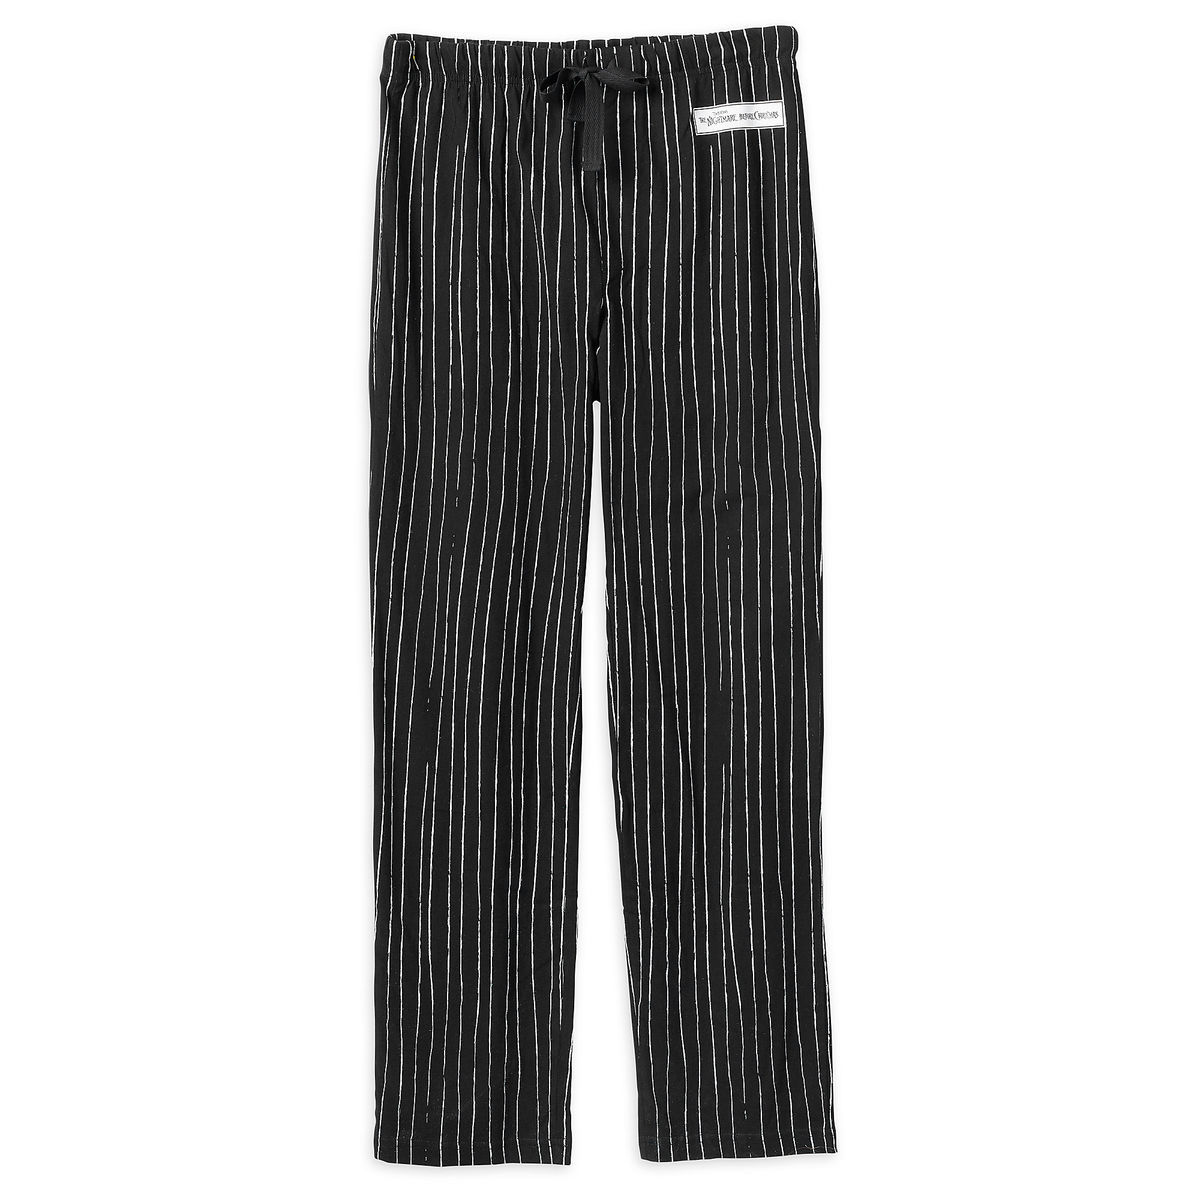 f5b8e30ff8 Product Image of Jack Skellington Sleep Pants for Men - Nightmare Before  Christmas   1